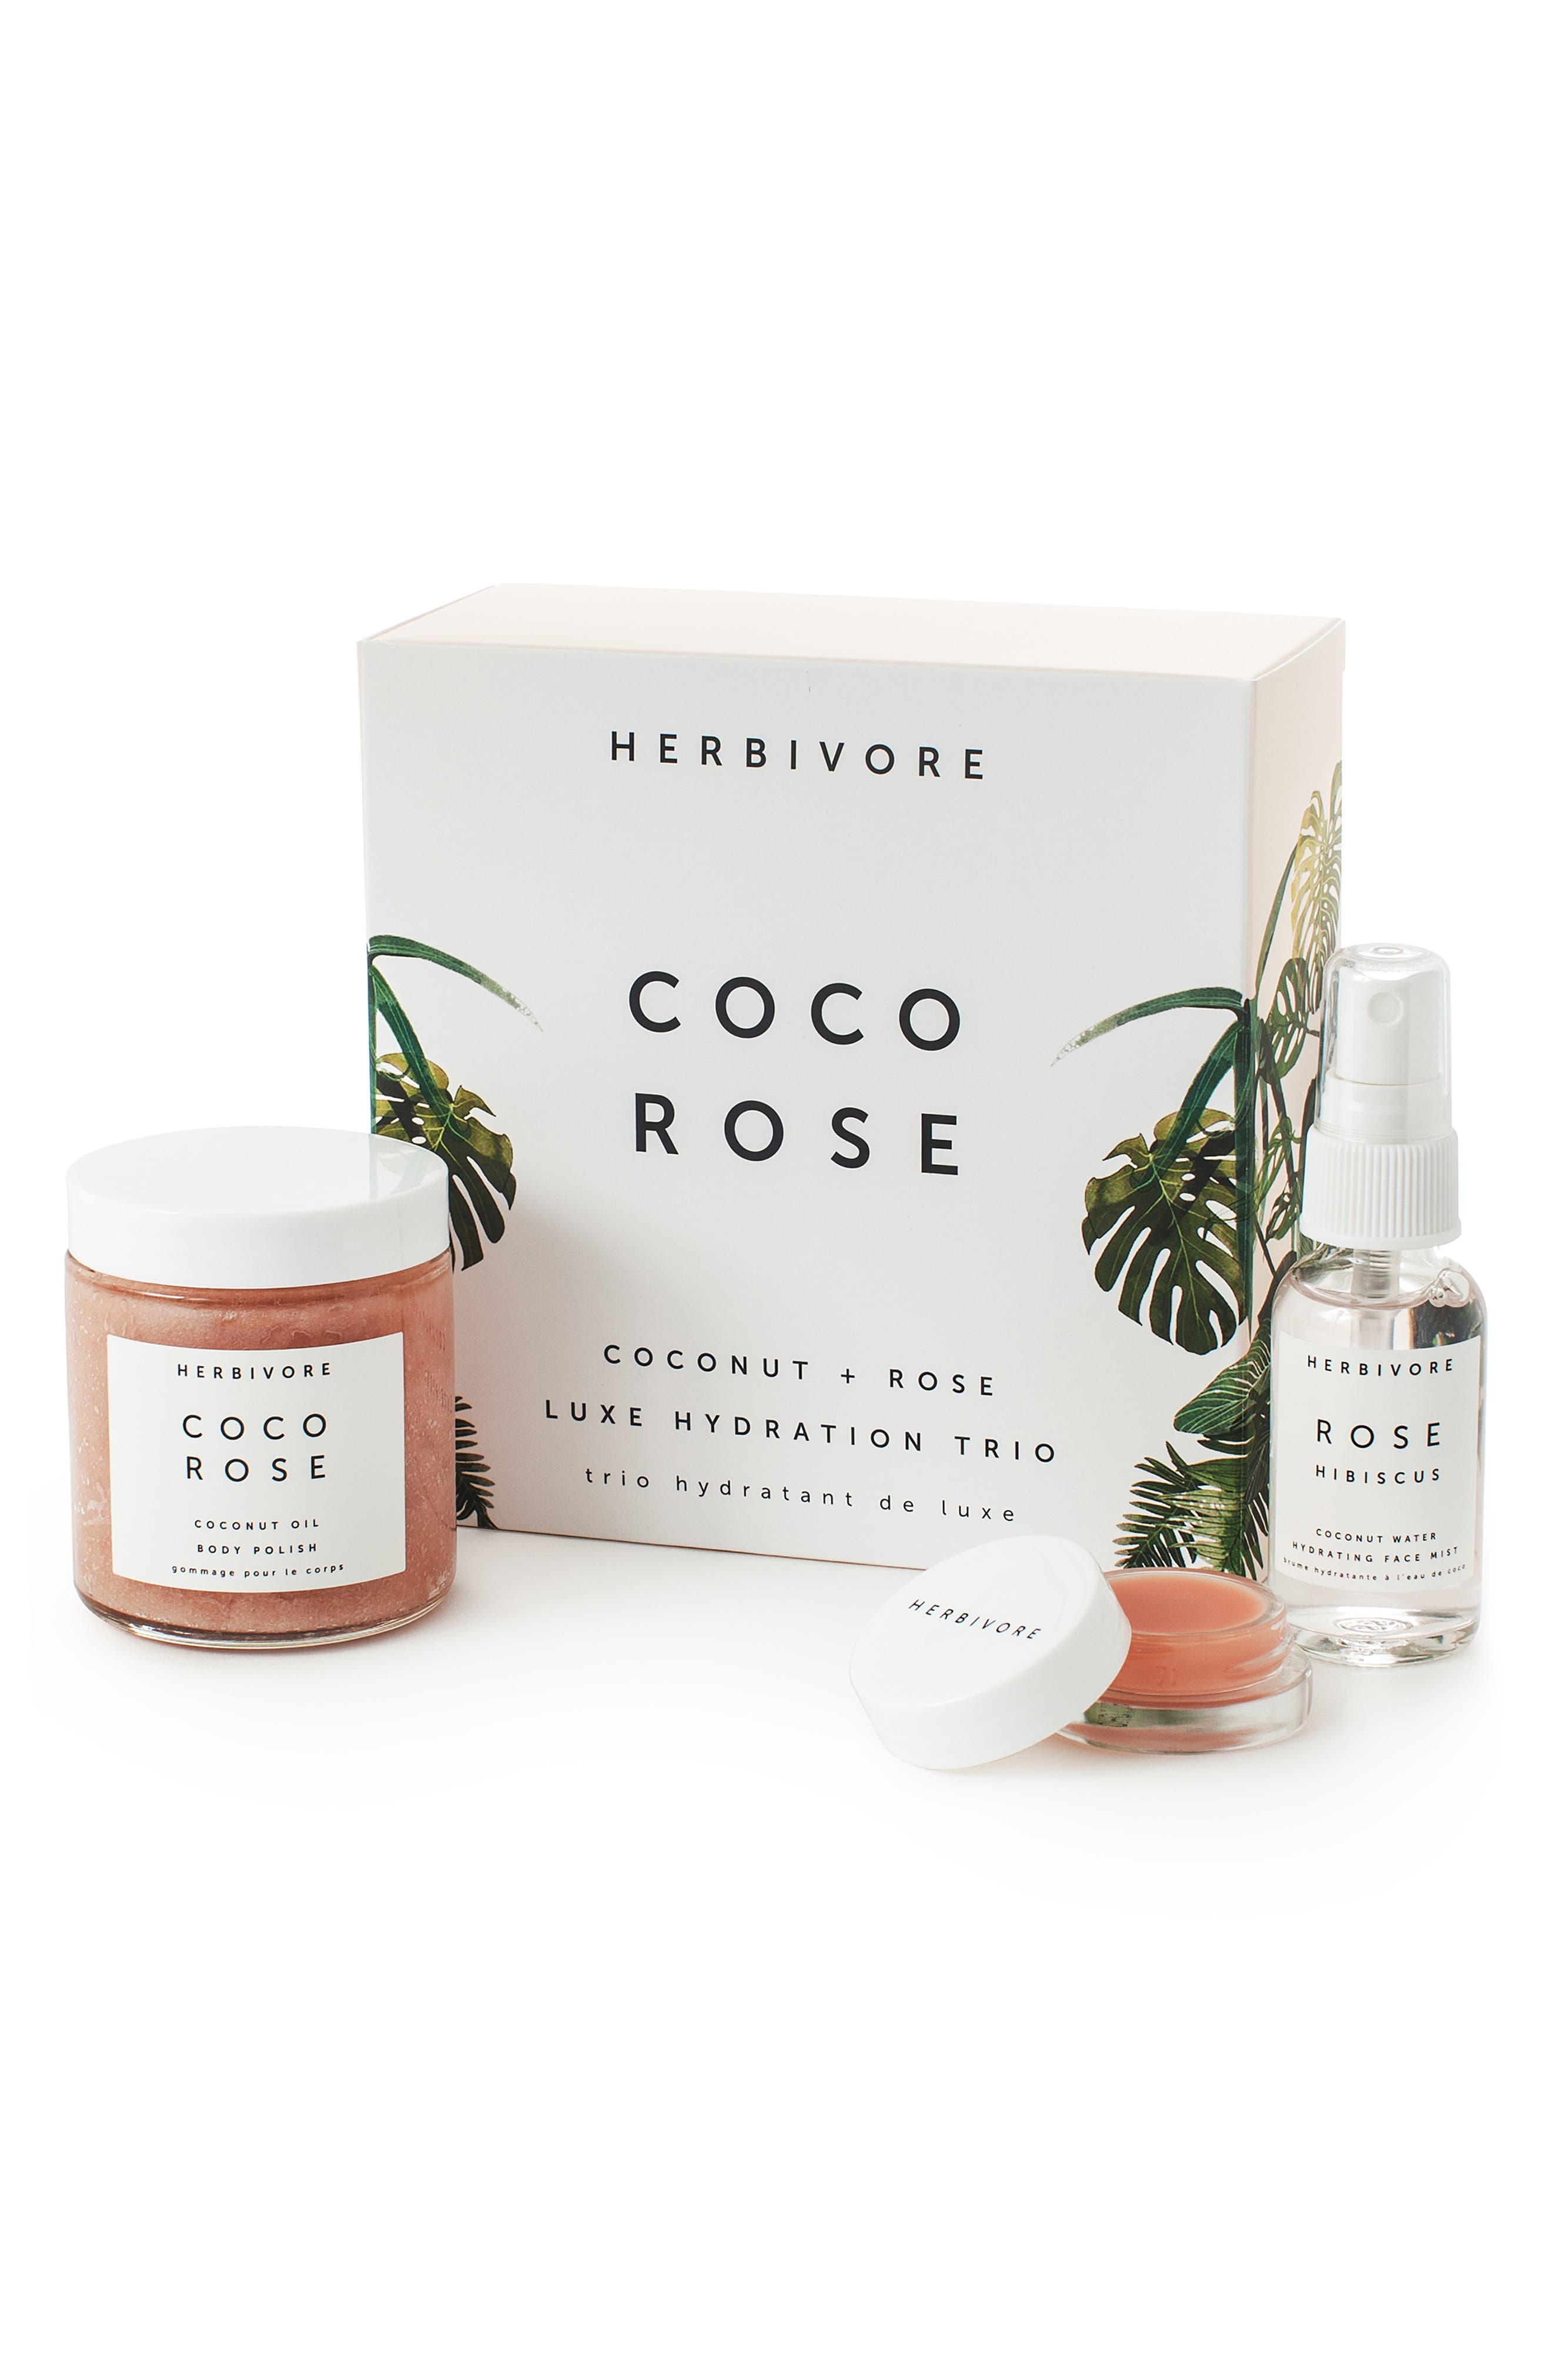 Herbivore Botanicals Coco Rose Luxe Hydration Trio (Limited Edition) ($51 Value)